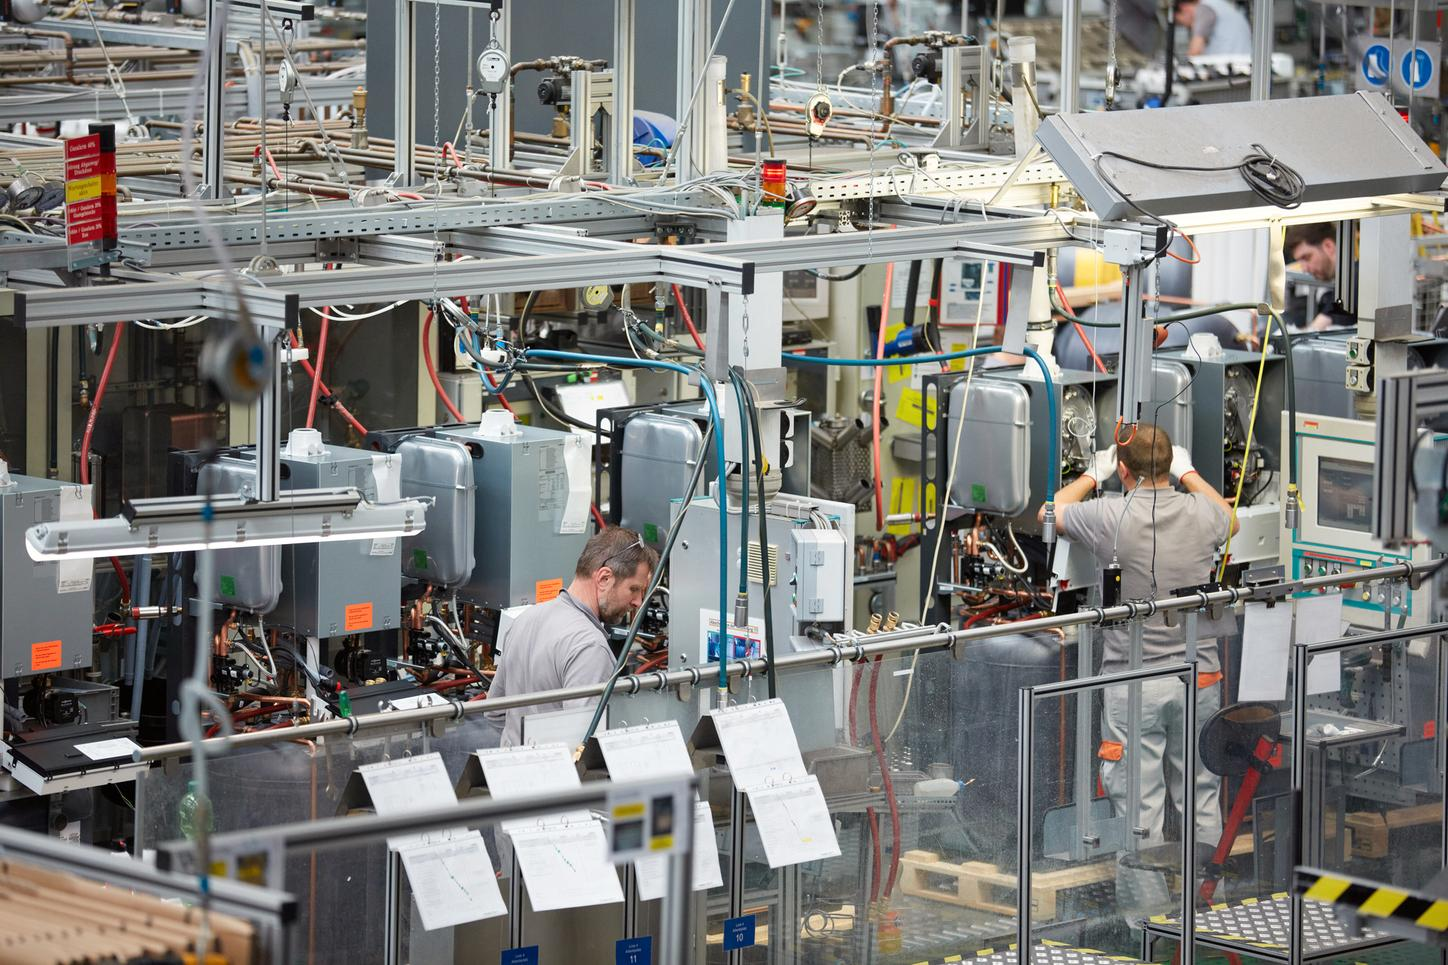 The image shows a Viessmann production hall.